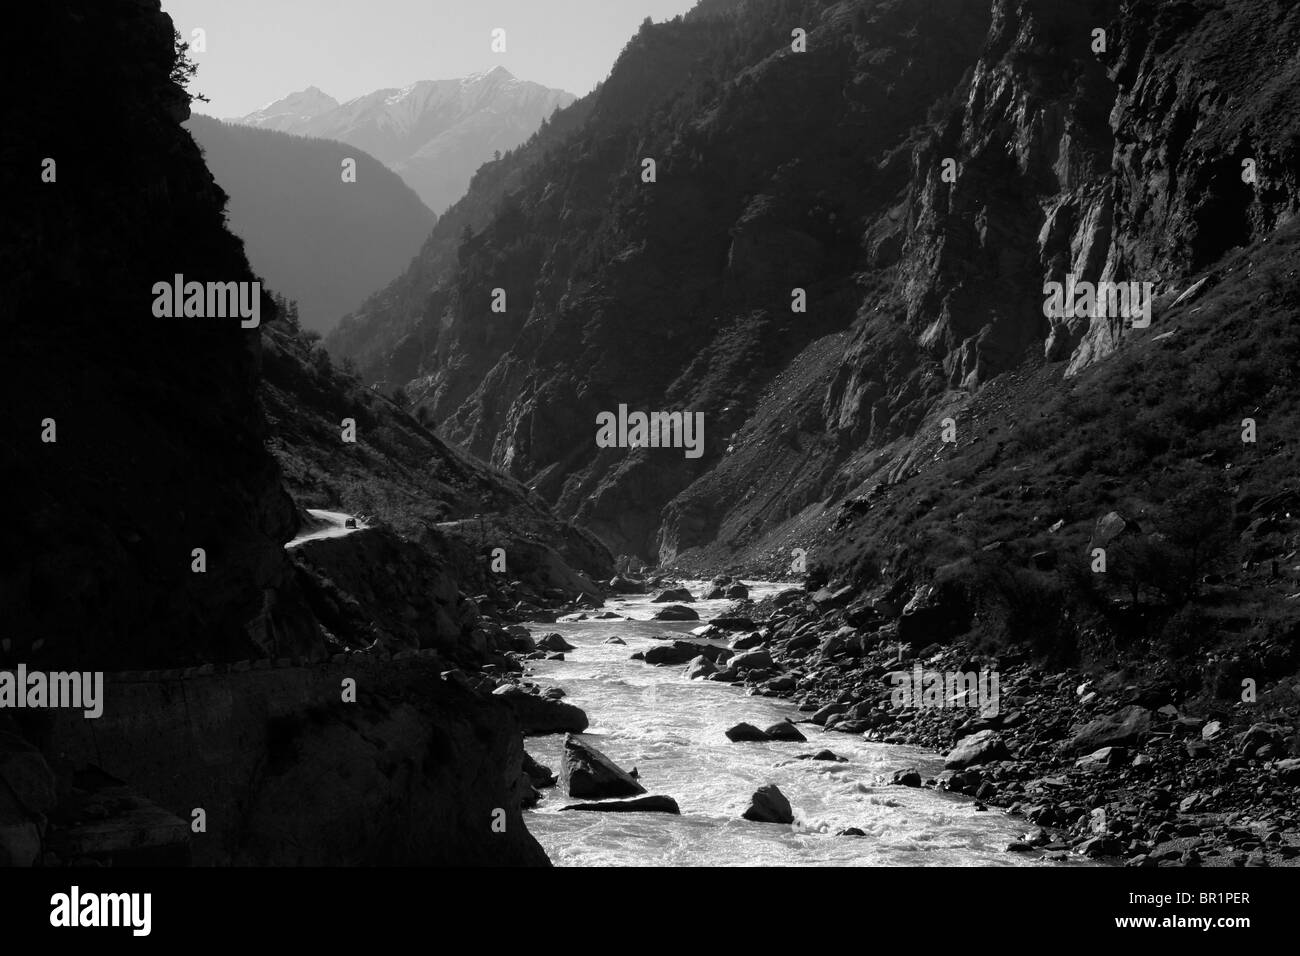 A view of the Sutlej river and a dramatic road which follows it in Himachal Pradesh in the Himalayas of northern - Stock Image